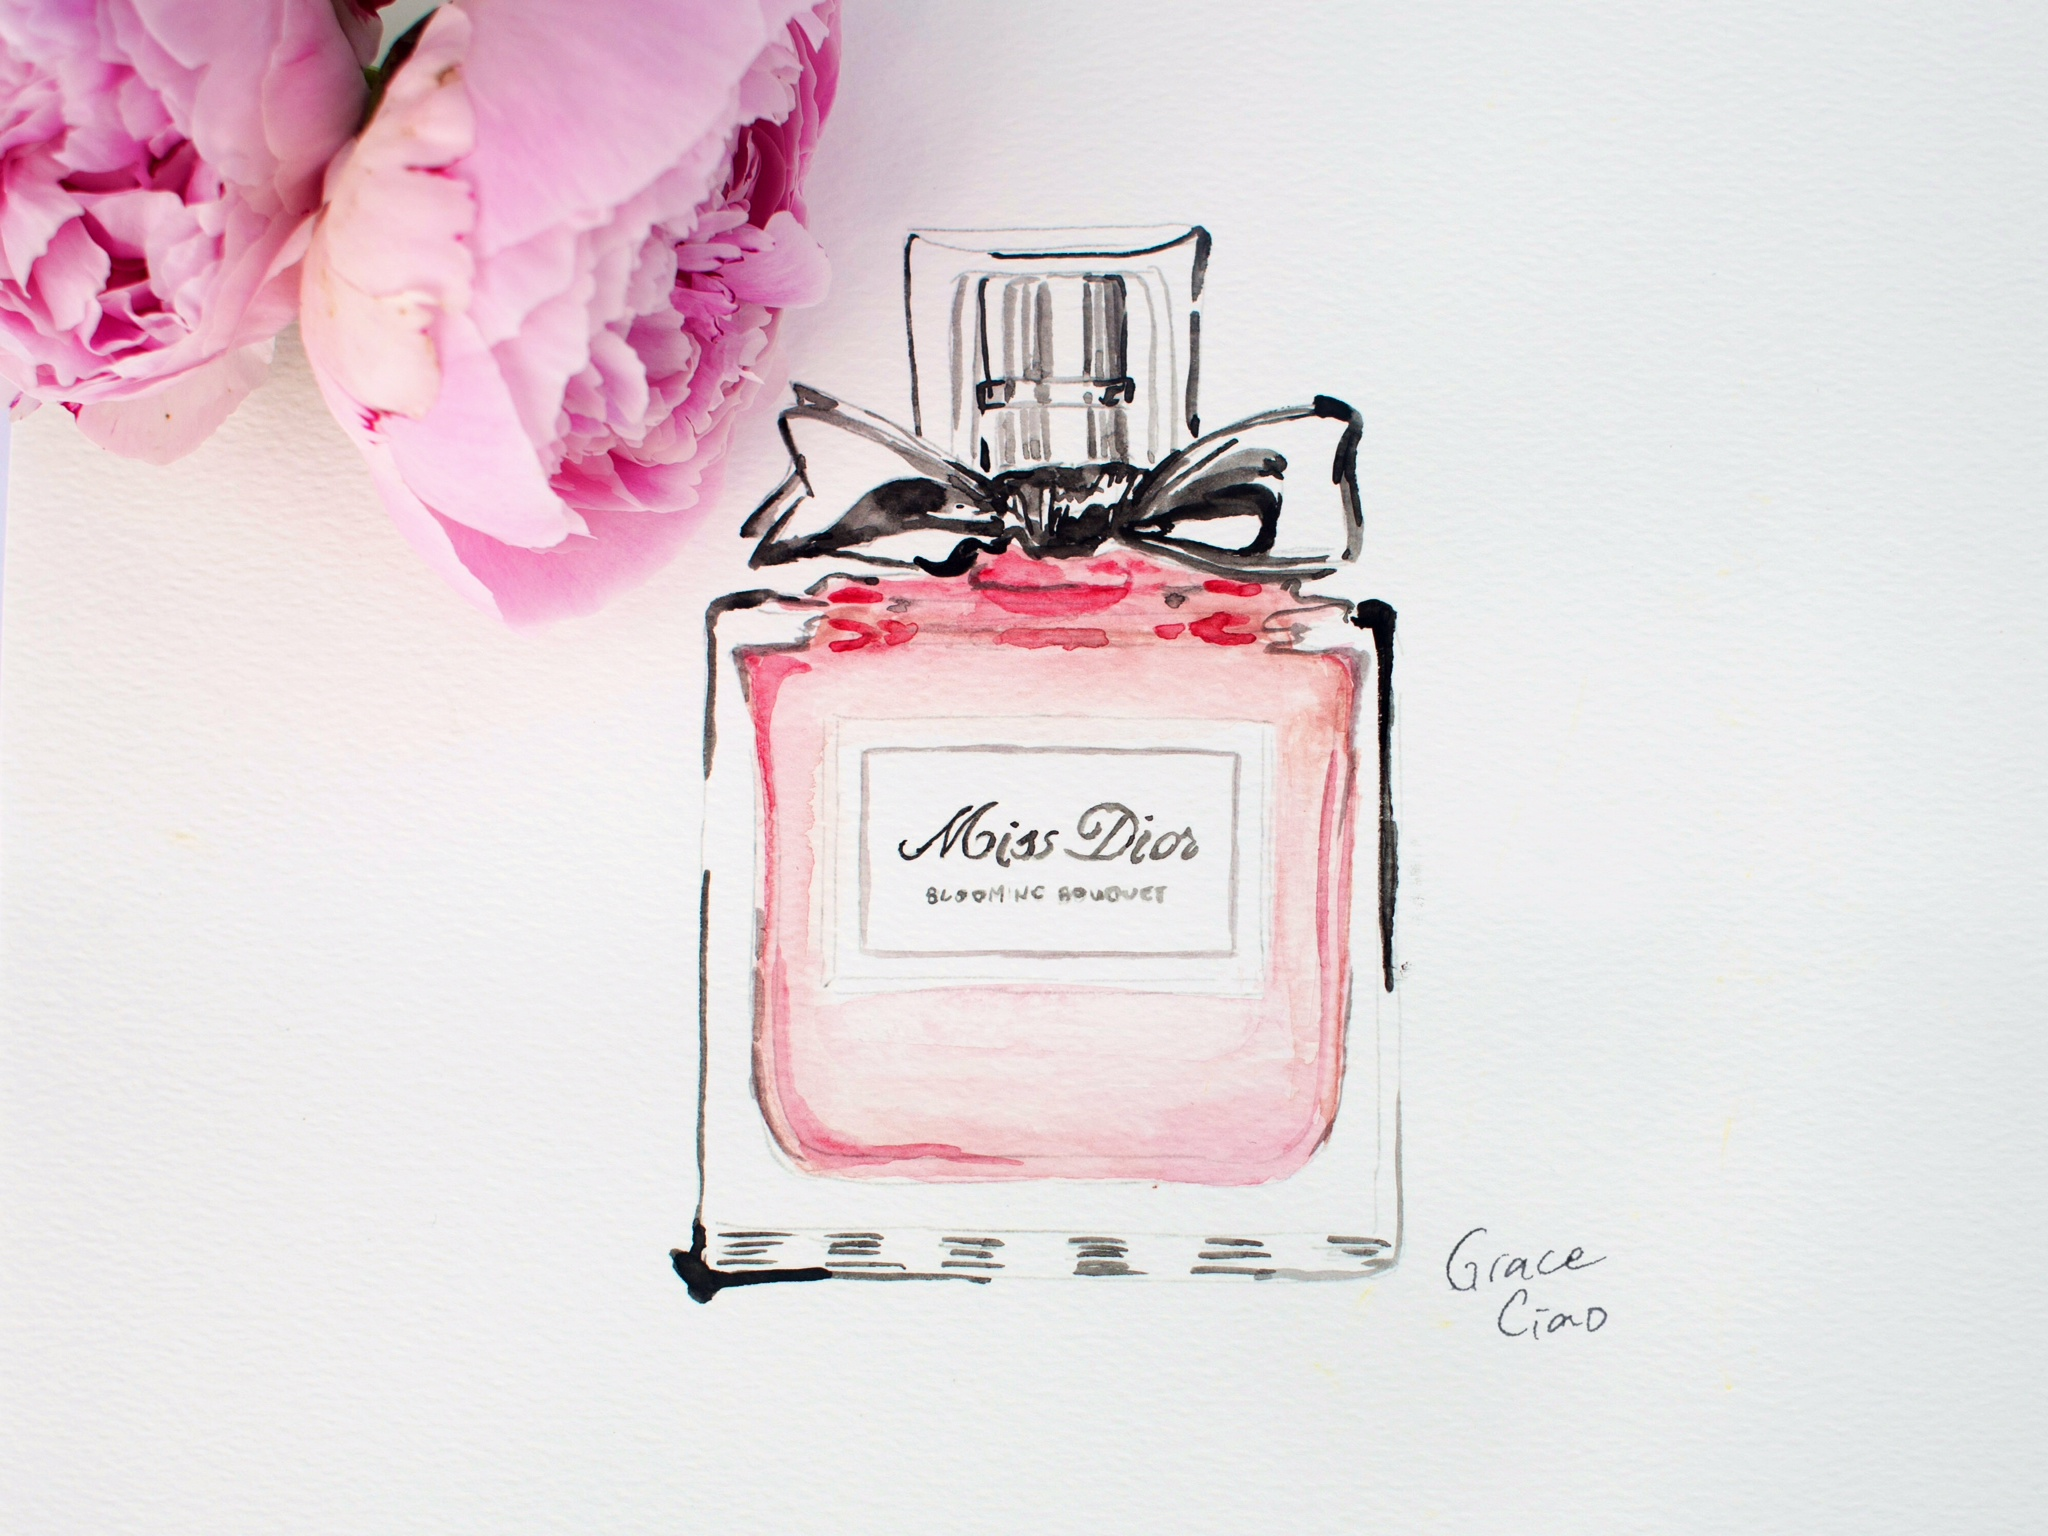 My Couture Fragrance: Miss Dior Blooming Bouquet